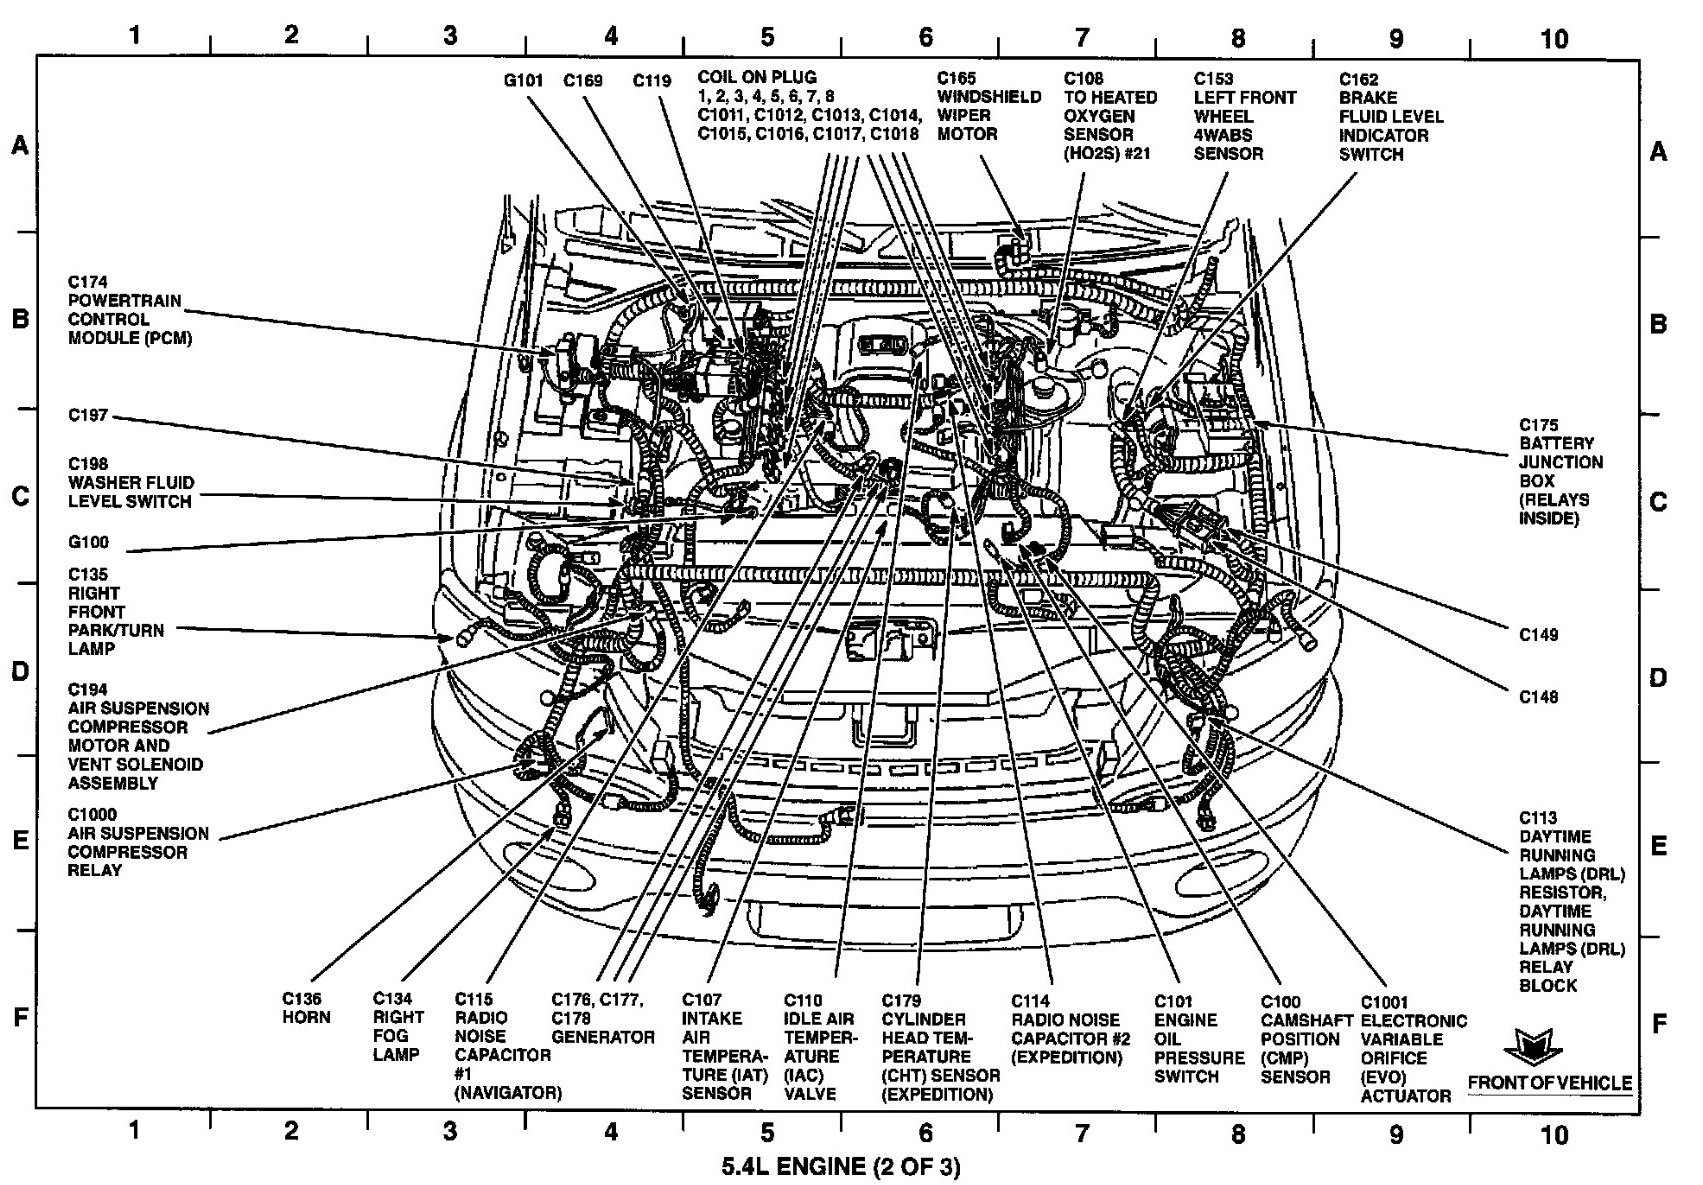 2004 bmw 325i engine diagram - wiring diagram base central -  central.jabstudio.it  jab studio